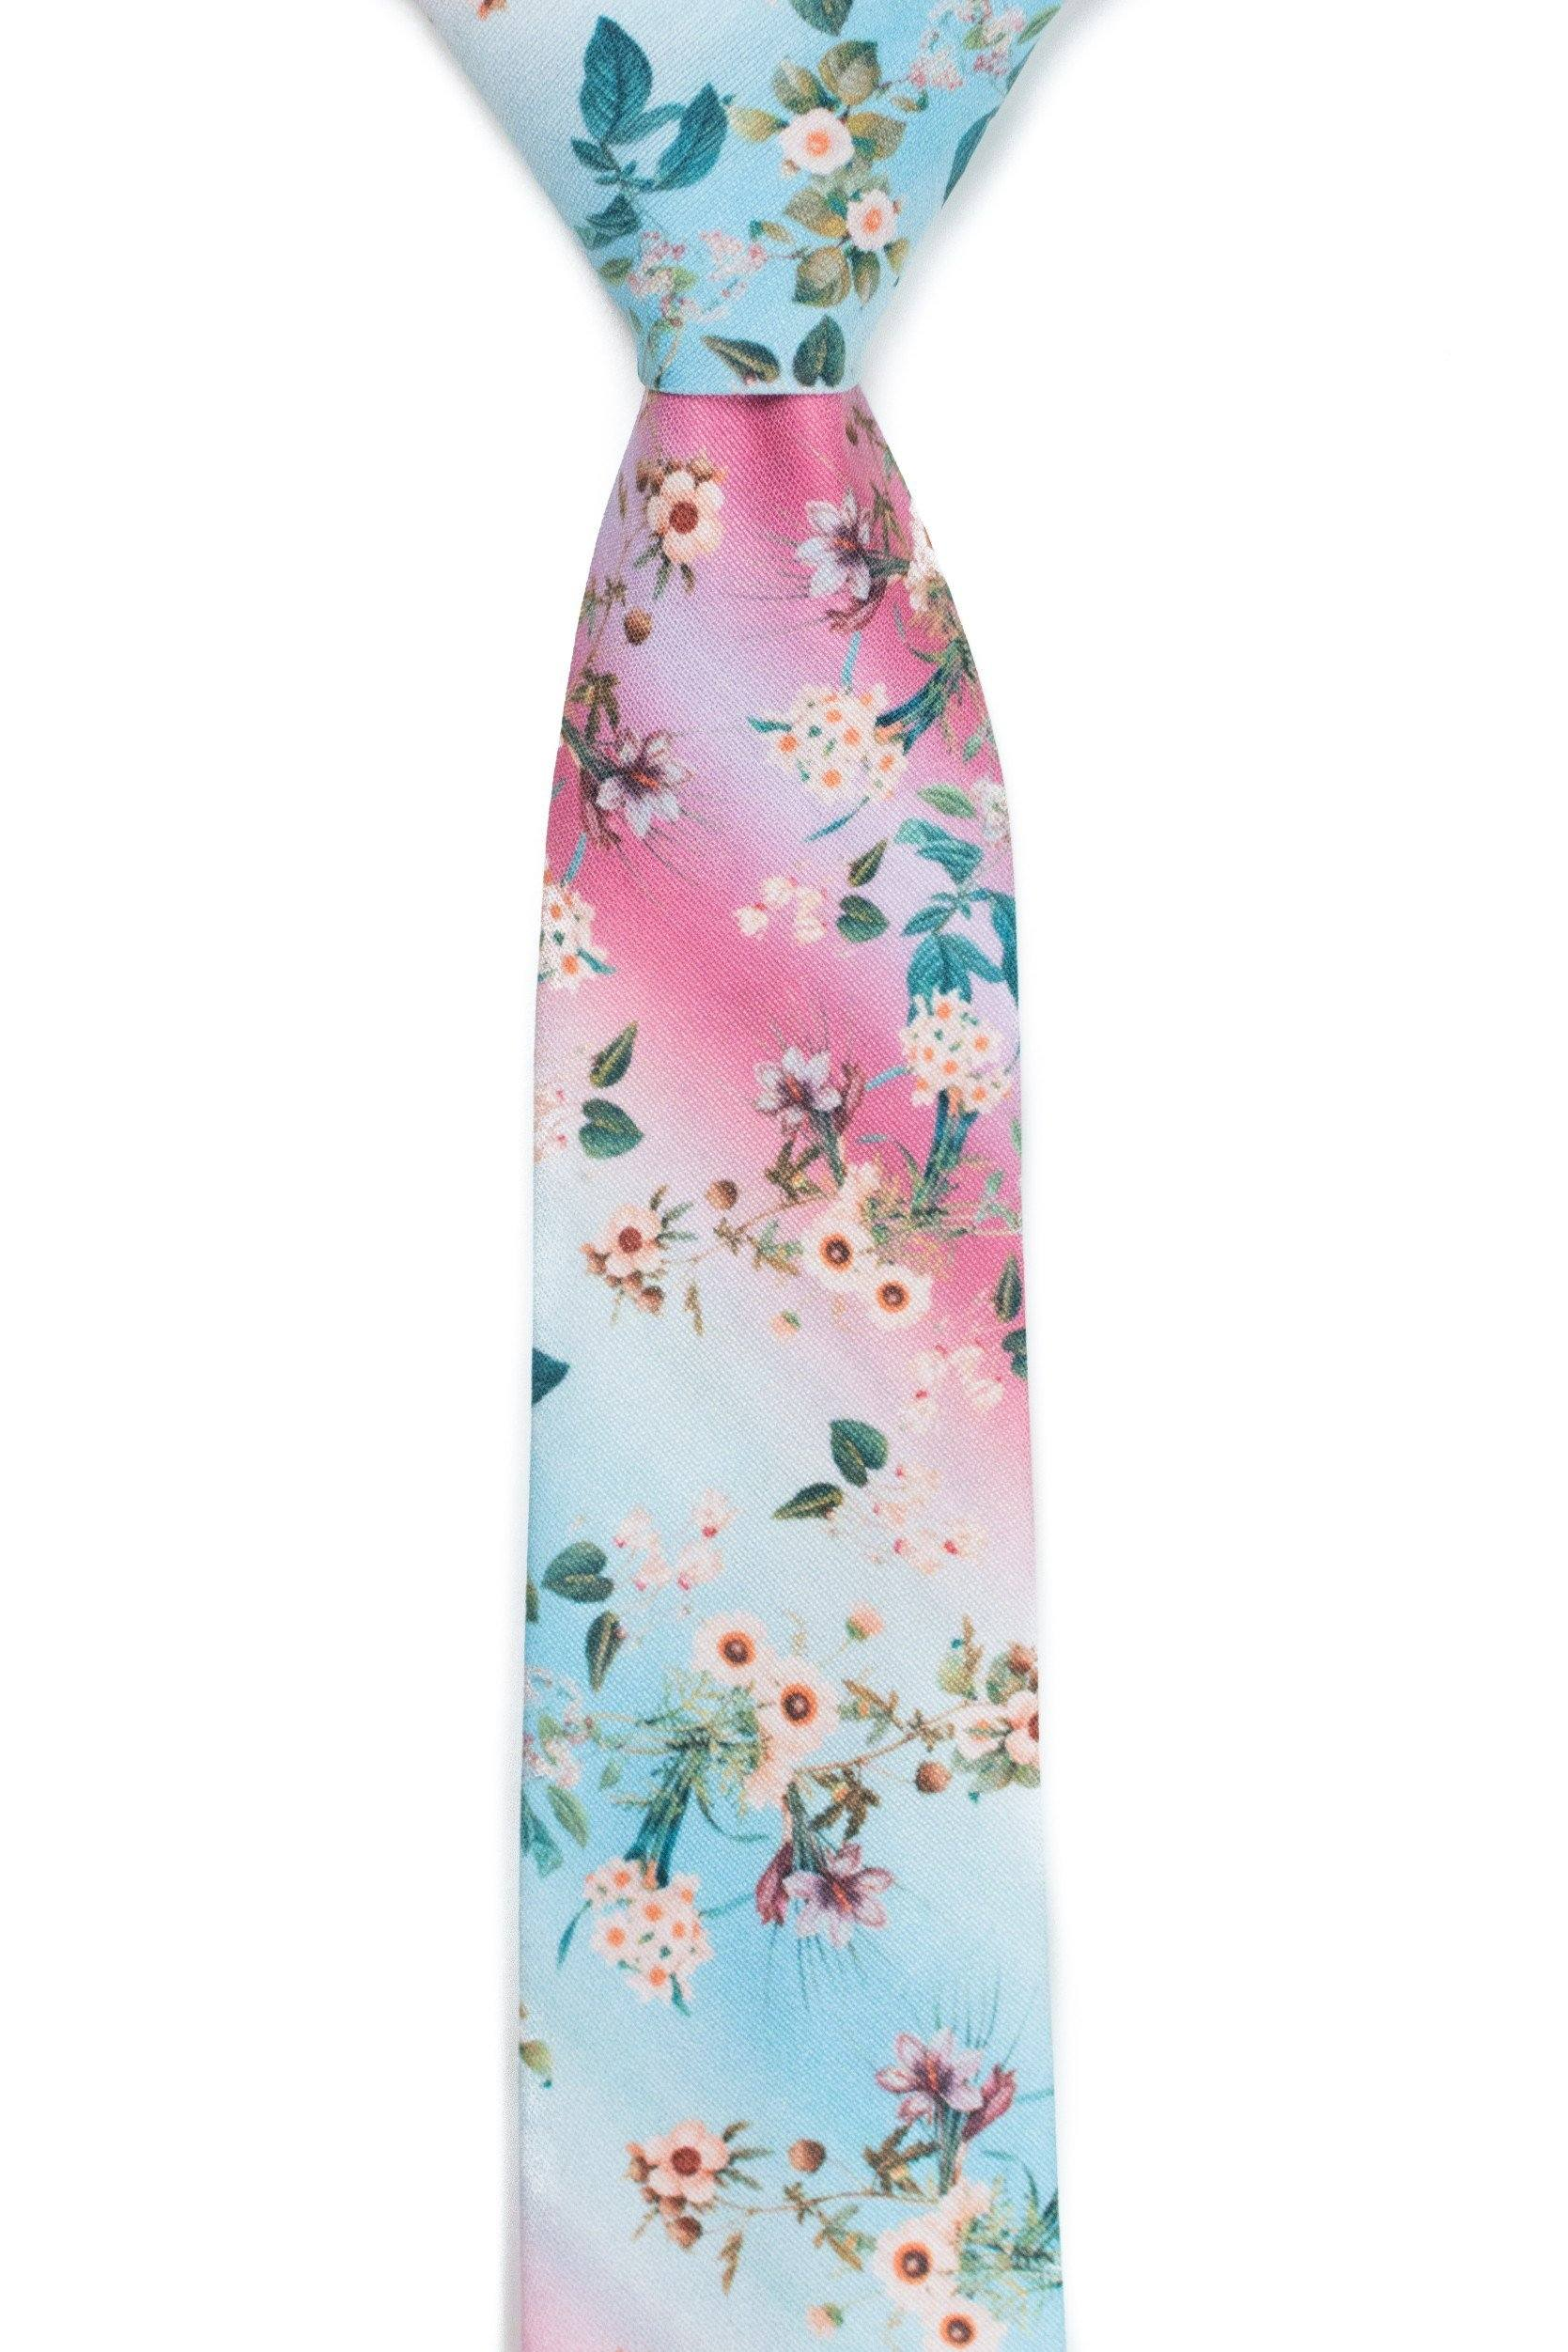 Solstice - Blue and Pink Flower Tie